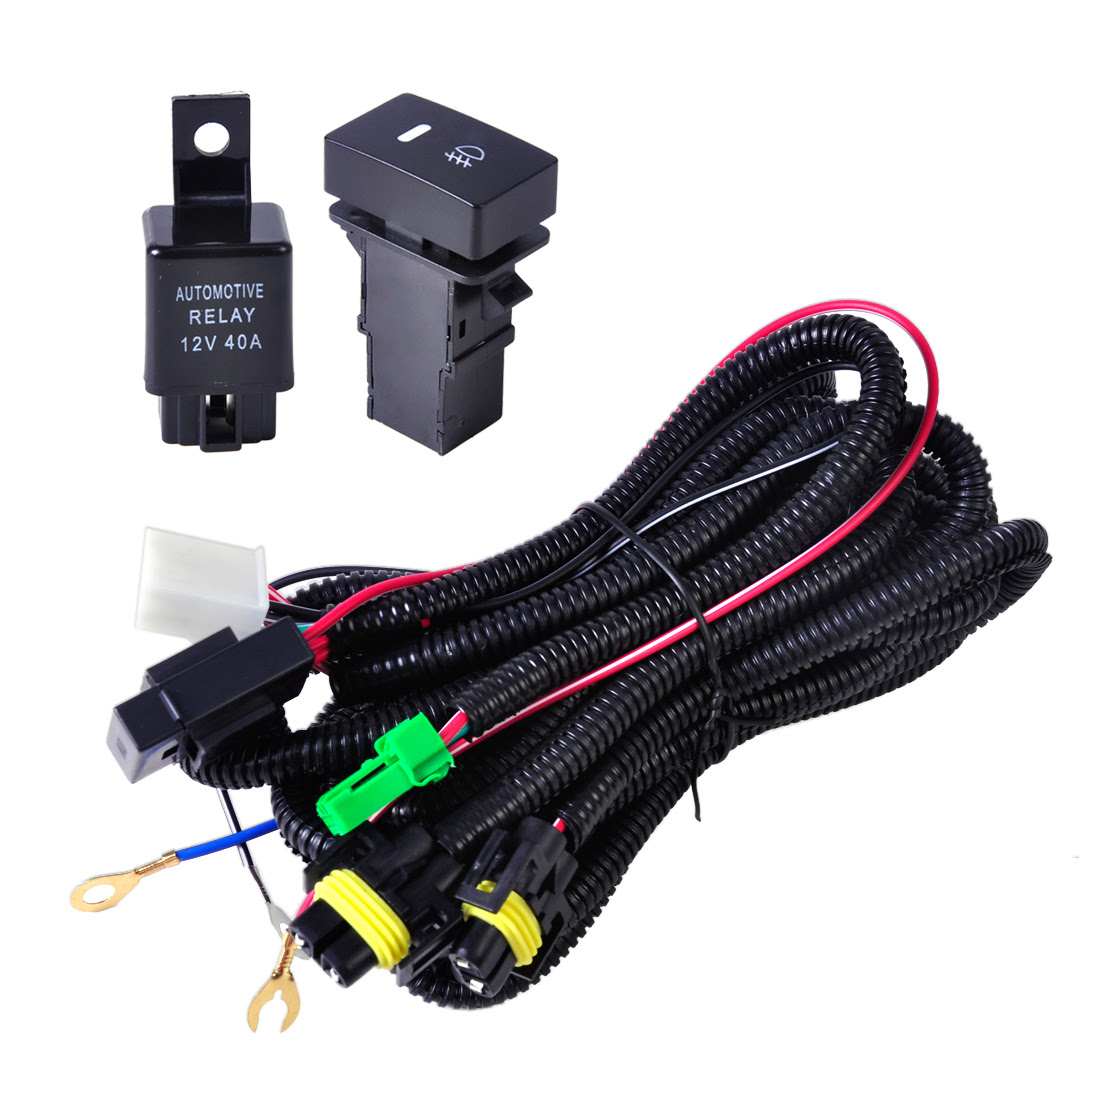 CITALL Wiring Harness Sockets + Switch + 2 H11 Fog Lights